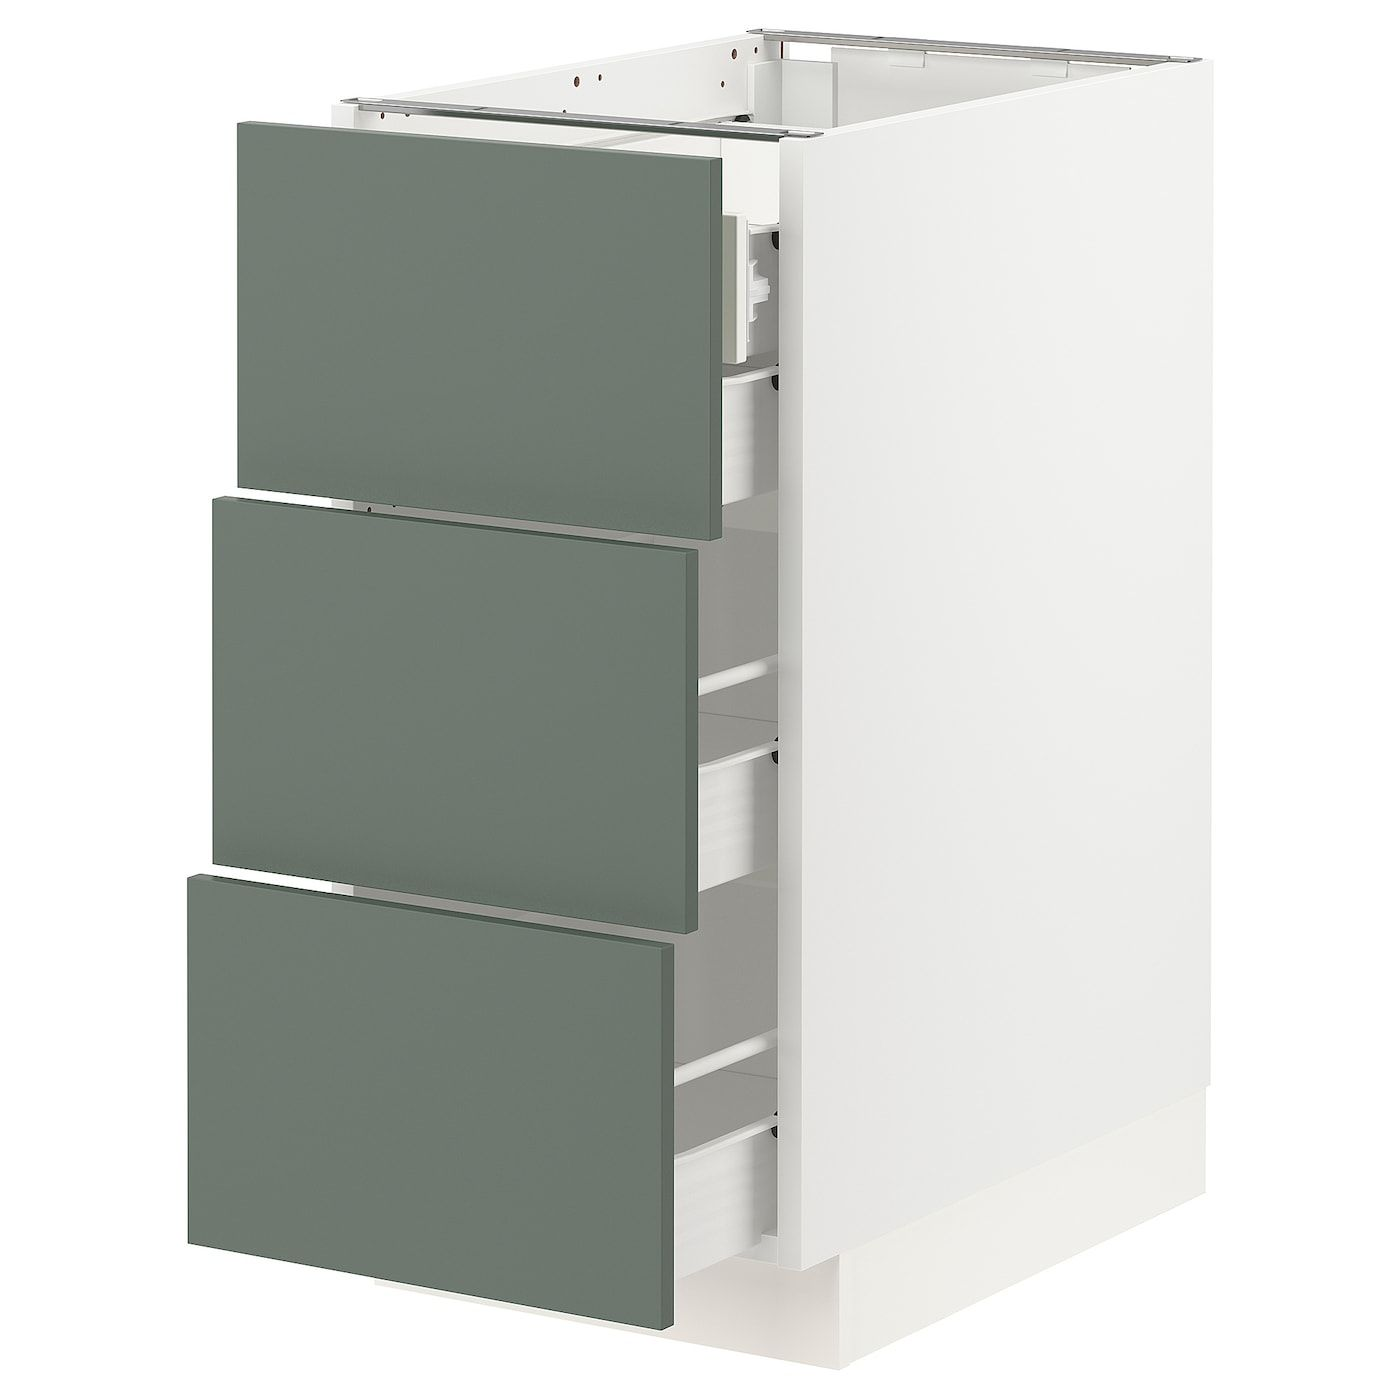 Sektion Forvara Base Cabinet W 3 Fronts 4 Drawers White Bodarp Gray Green 15x24x30 Ikea In 2020 Base Cabinets Drawers Ikea